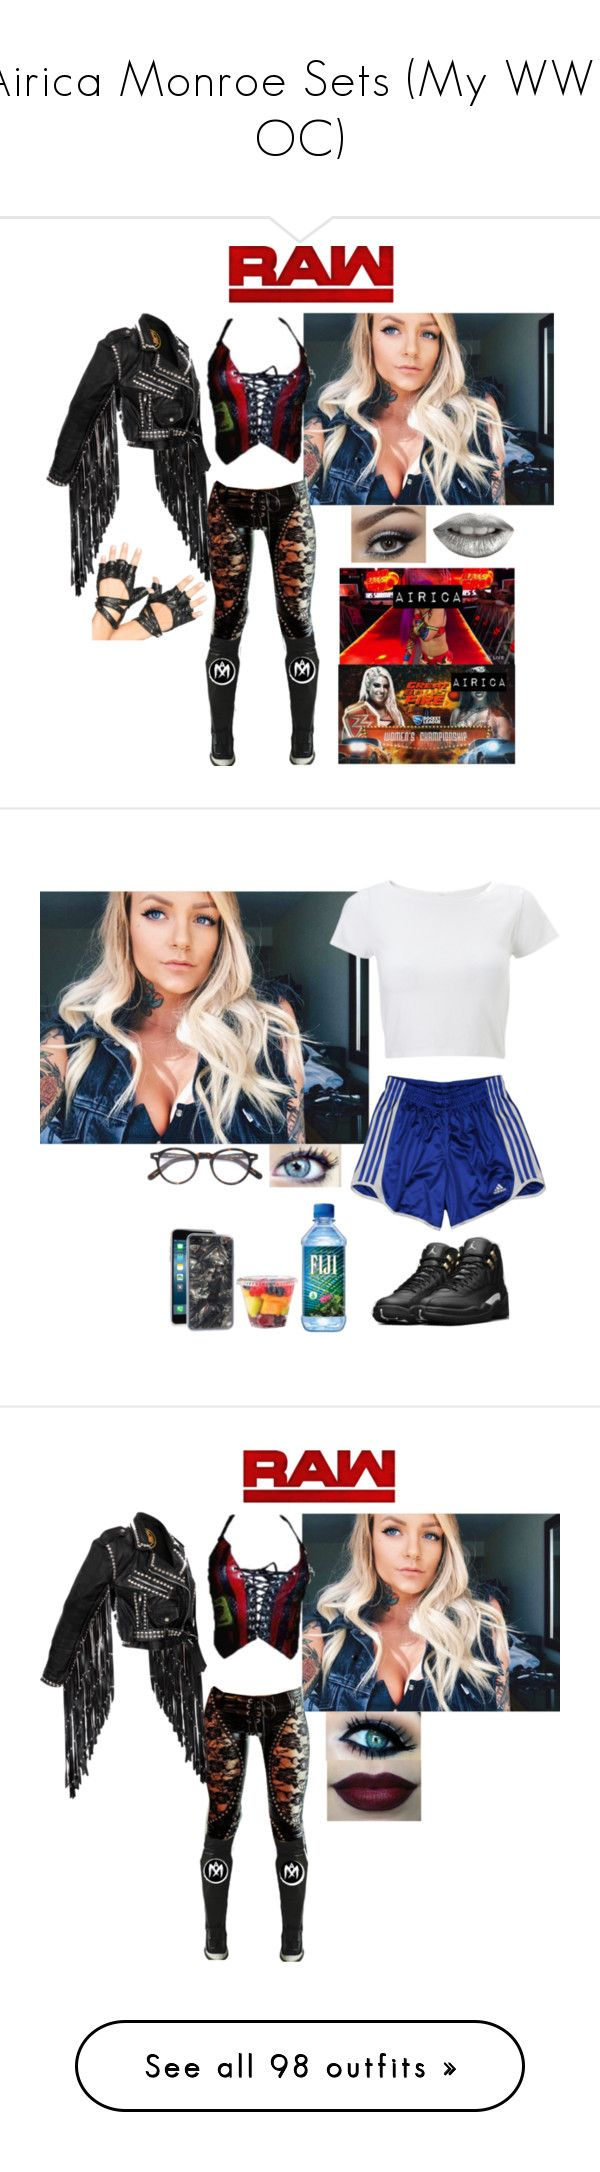 """Airica Monroe Sets (My WWE OC)"" by atomic-blaster ❤ liked on Polyvore featuring Leg Avenue, Urban Decay, Lipsy, adidas, NIKE, Moscot, Zero Gravity, Killstar, Dr. Martens and Alexis Bittar"